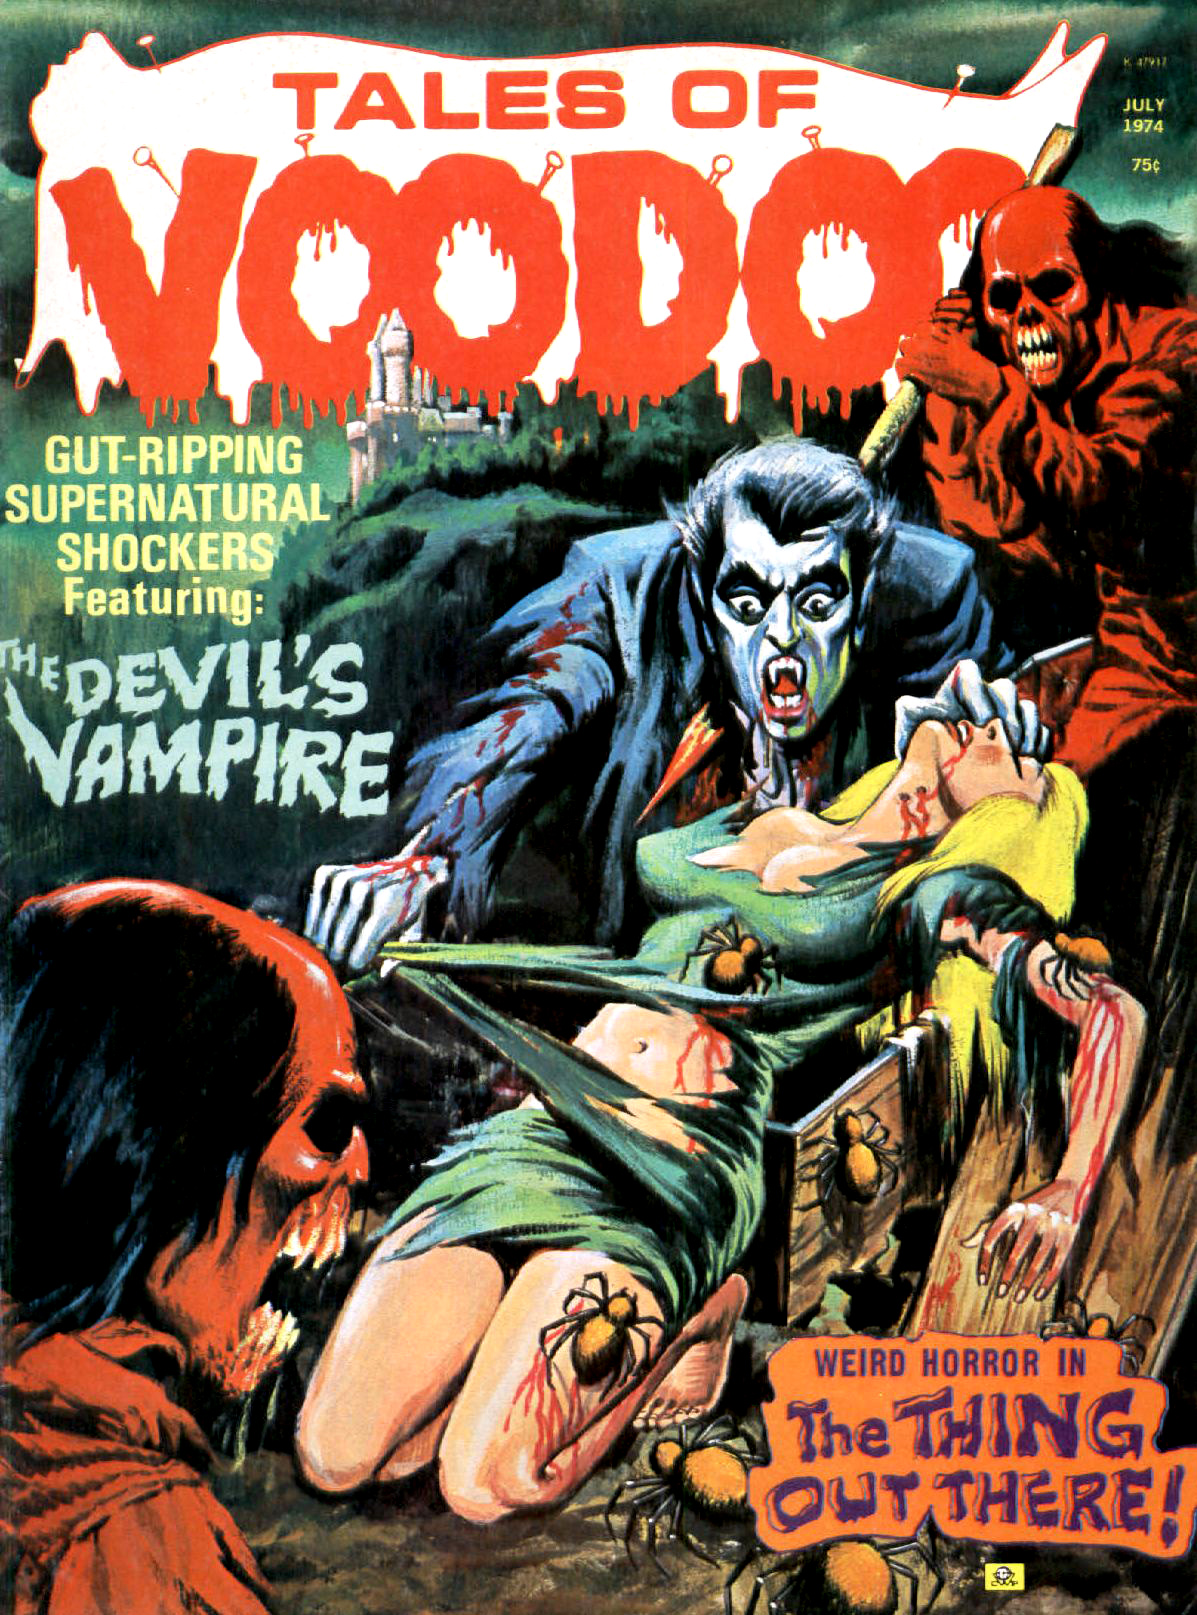 Tales of Voodoo Vol. 7 #4 (Eerie Publications 1974